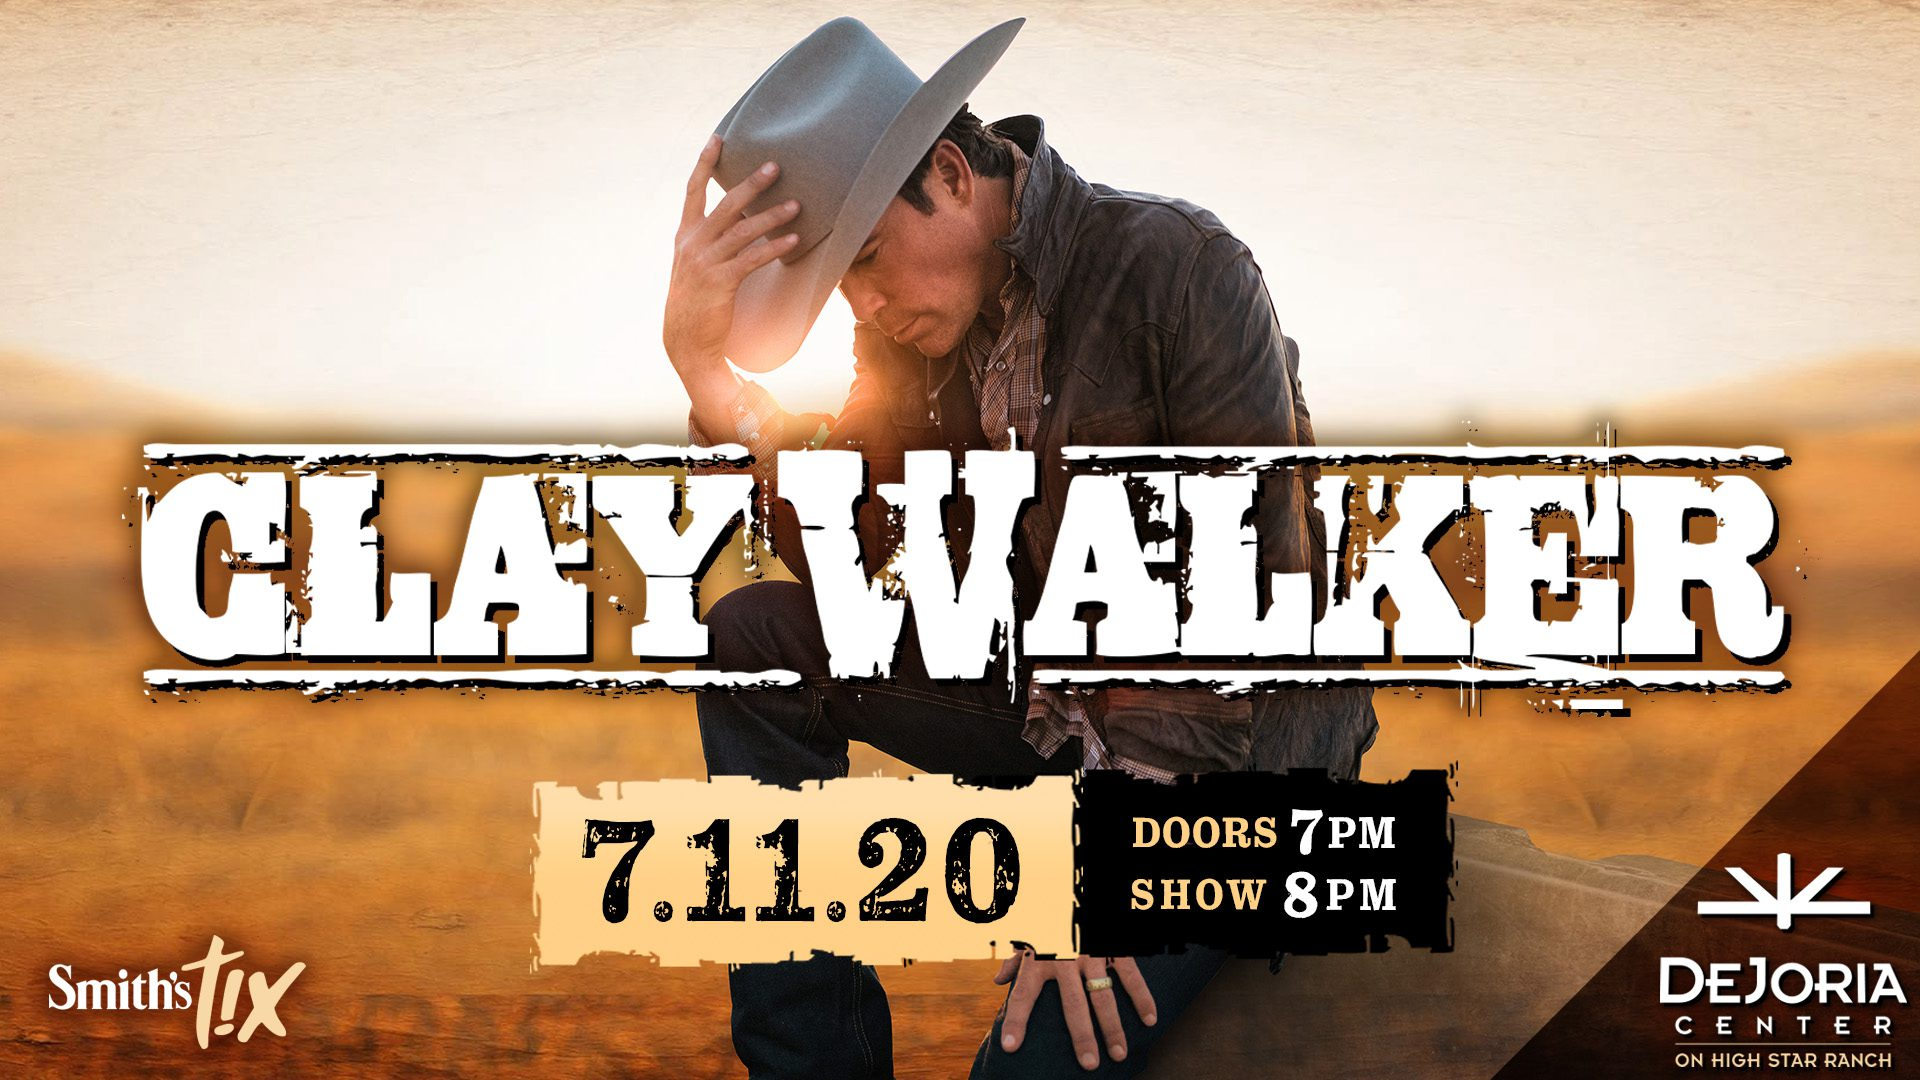 DeJoria-Center-Clay-walker-concert-park-city